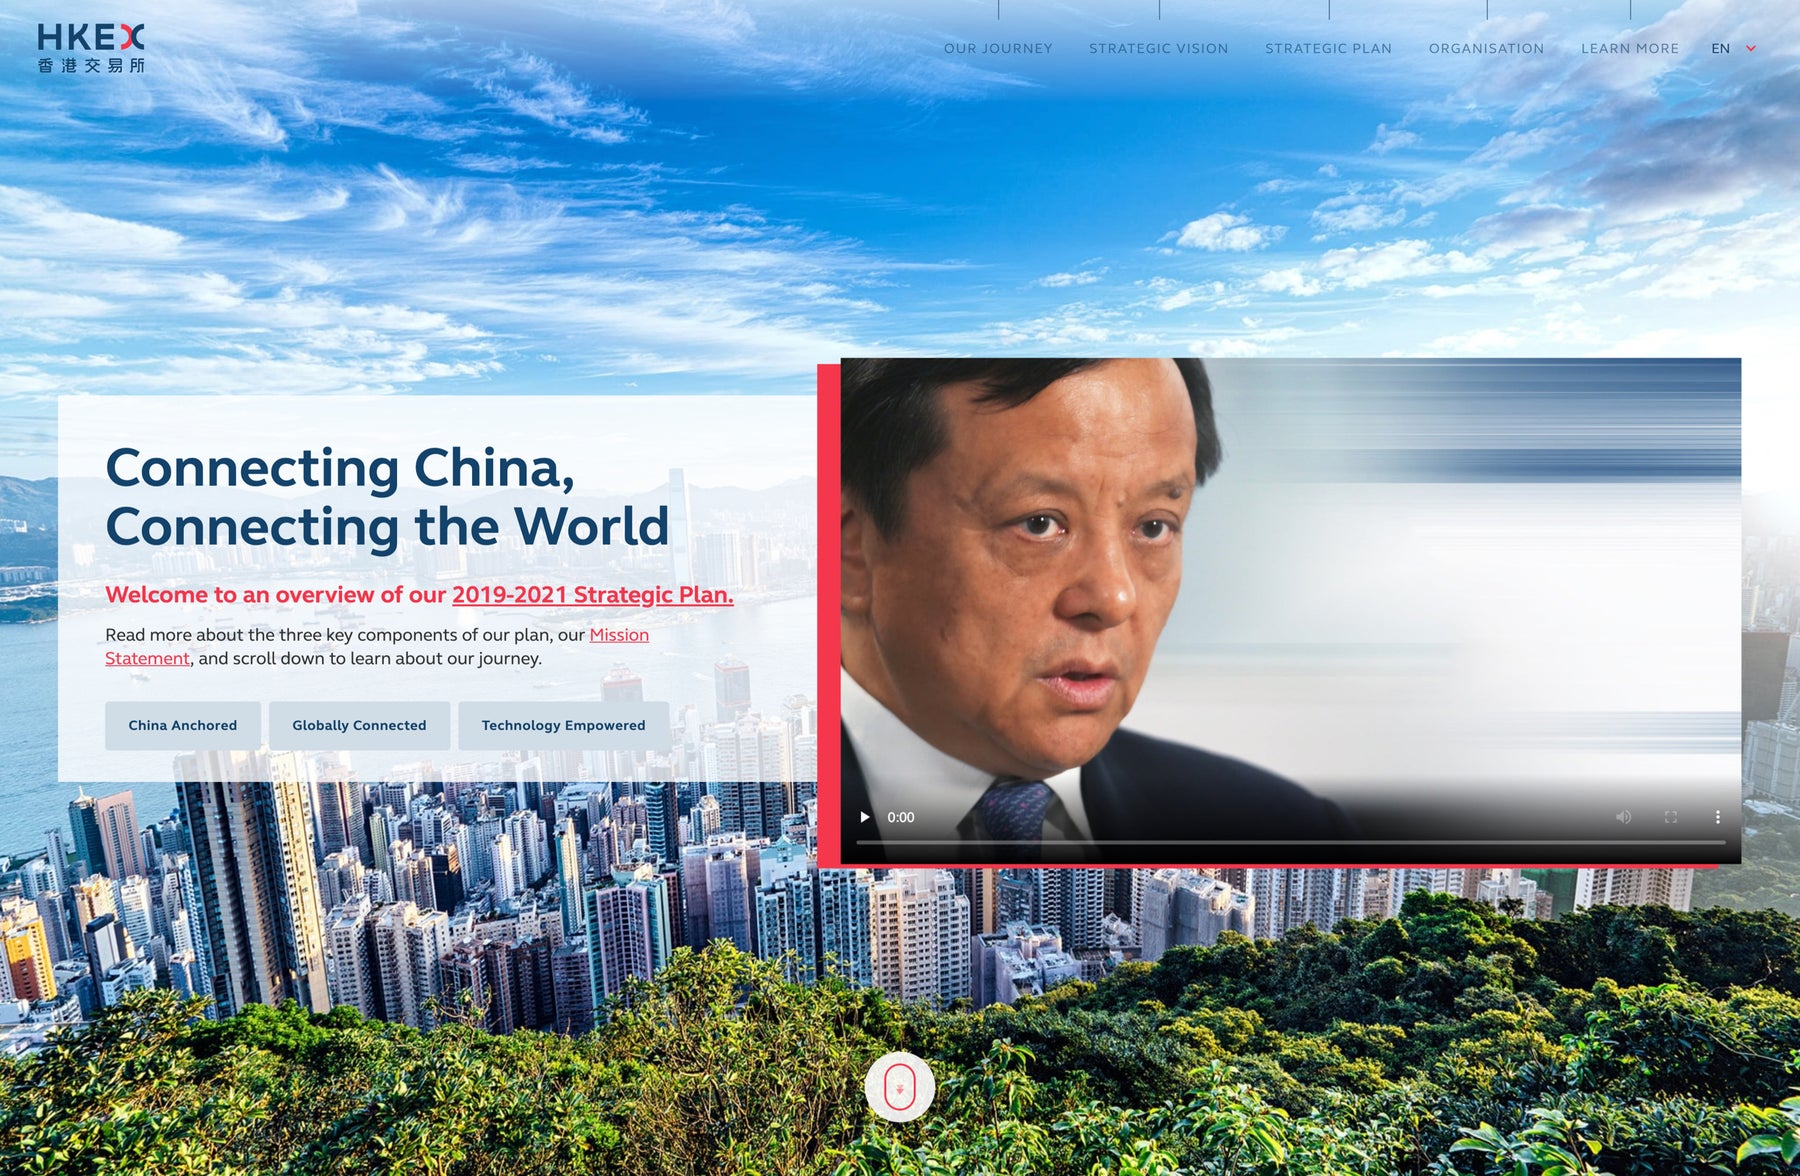 Introducing HKEX's Strategic Plan to showcase their ability to create investment opportunities in China for investors worldwide